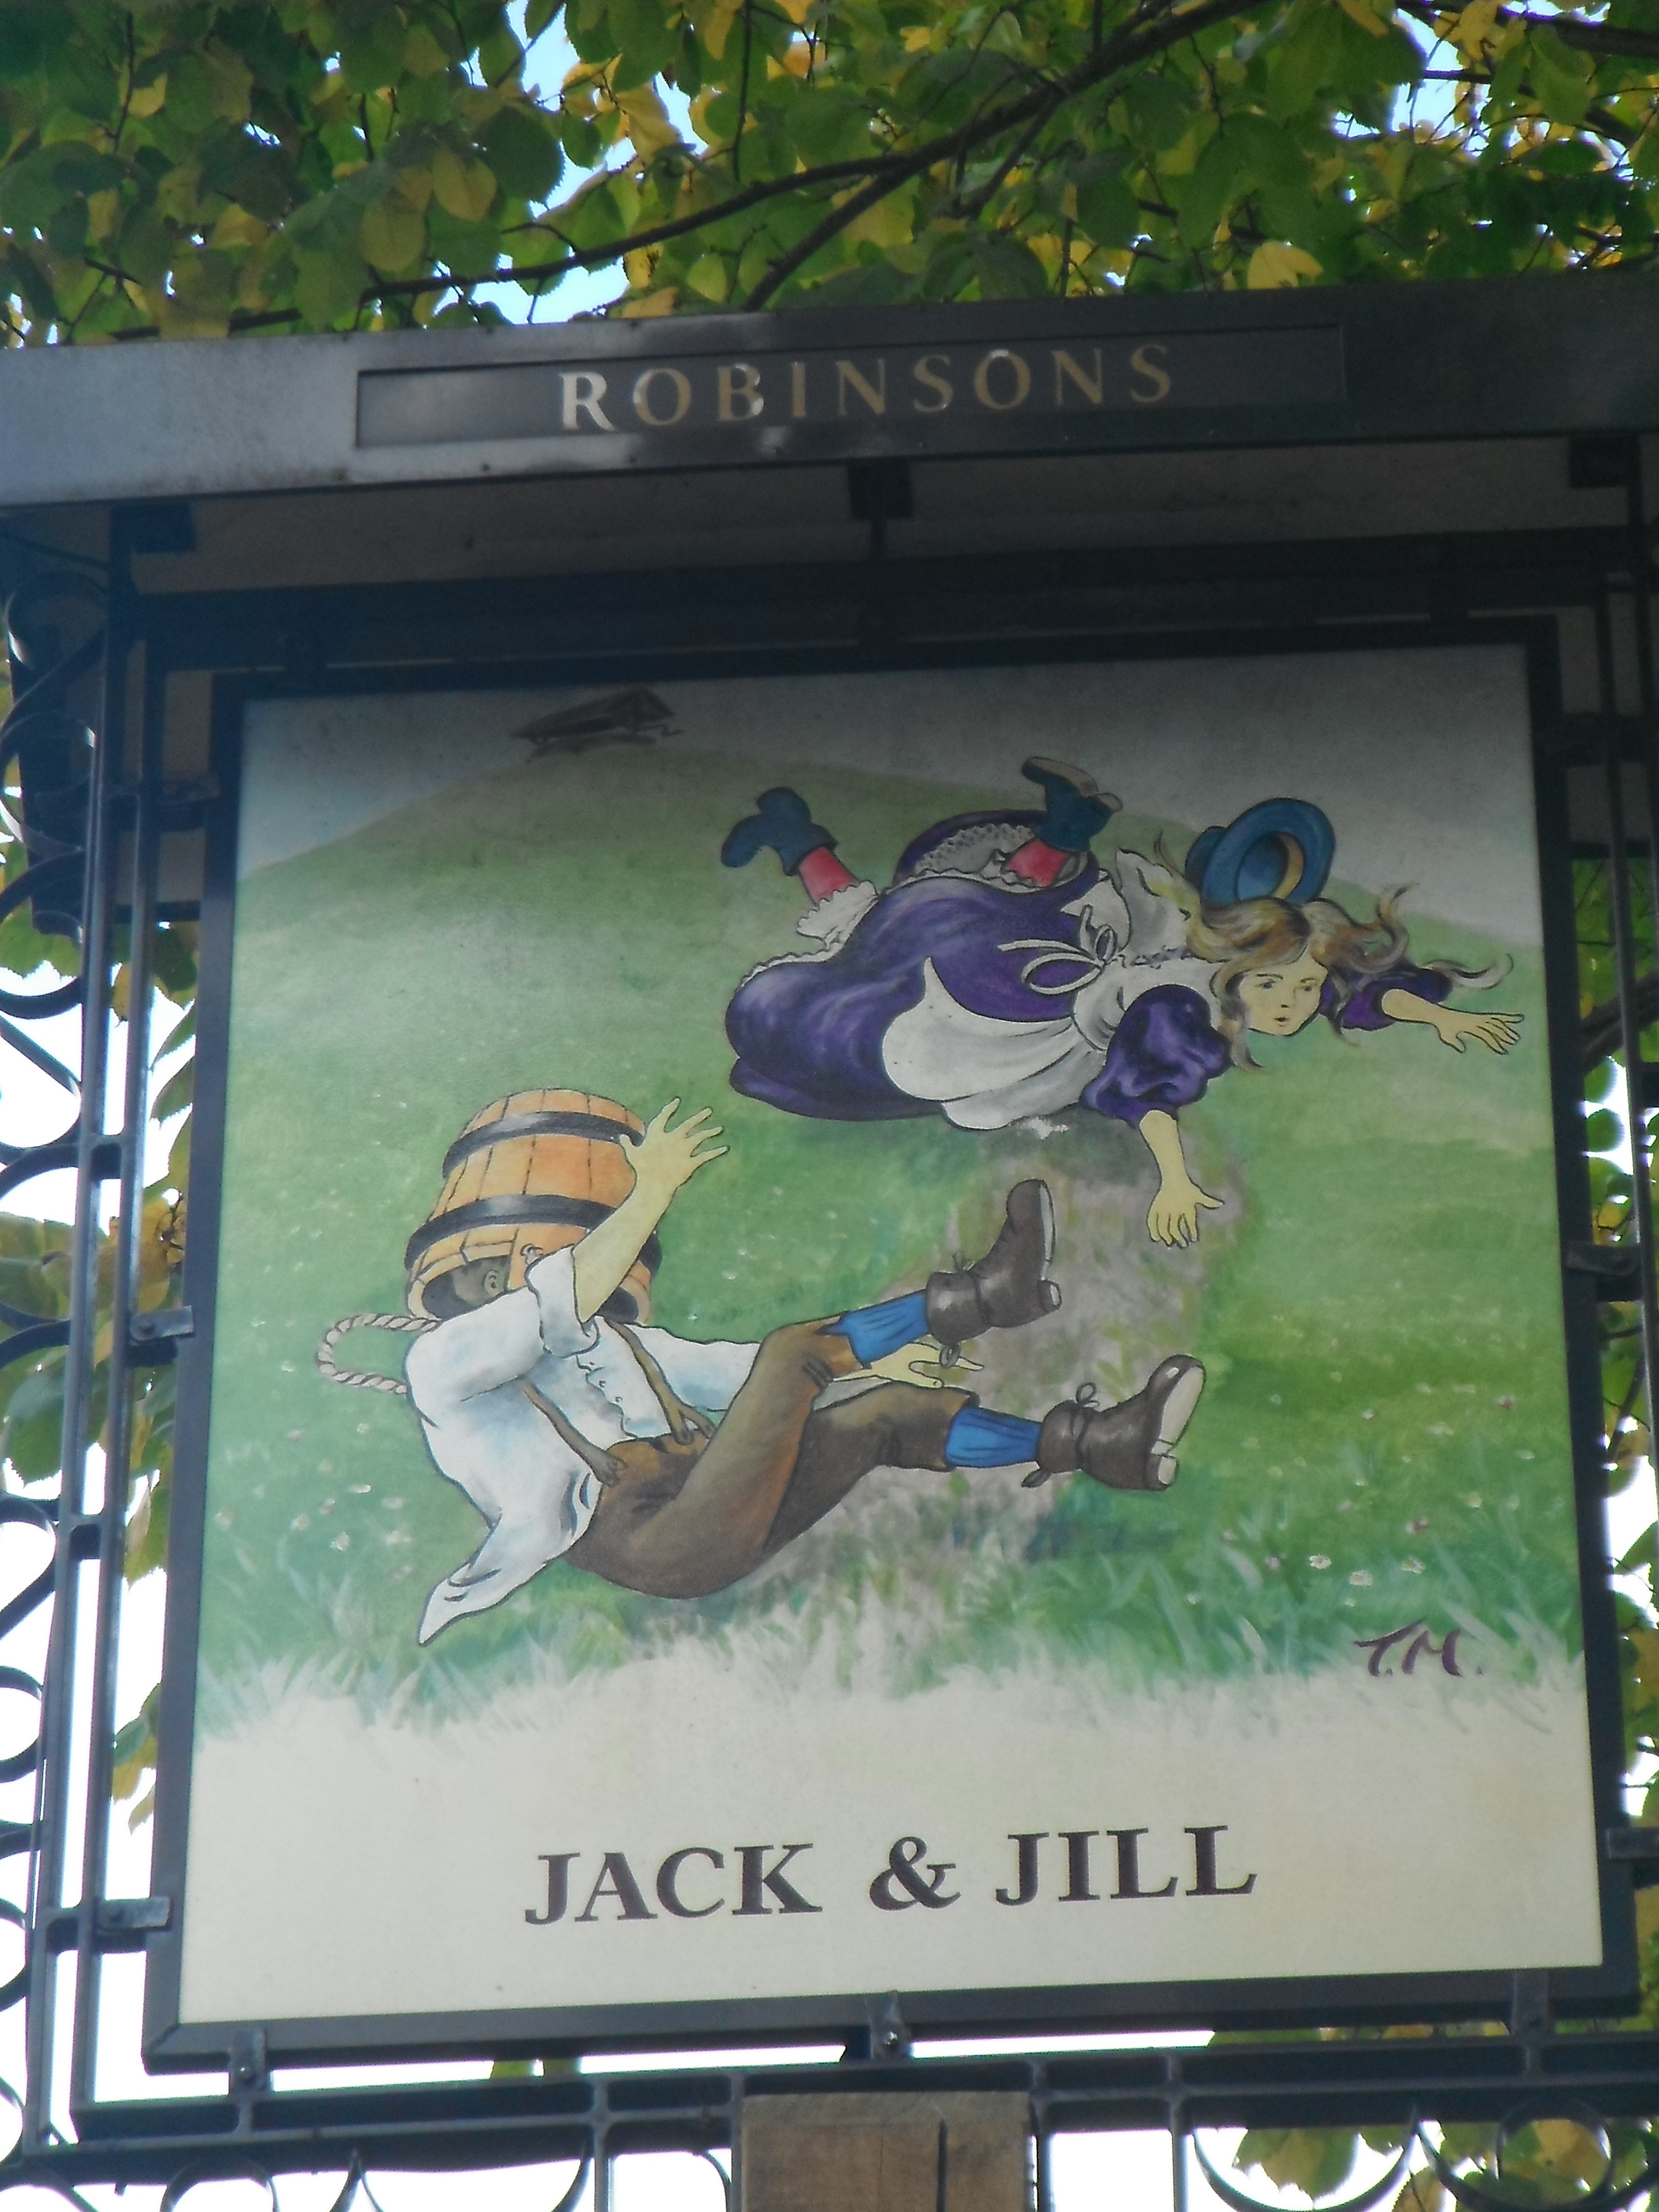 Photo taken by me - Pub Sign - The Jack And Jill Brinnington Stockport Cheshire